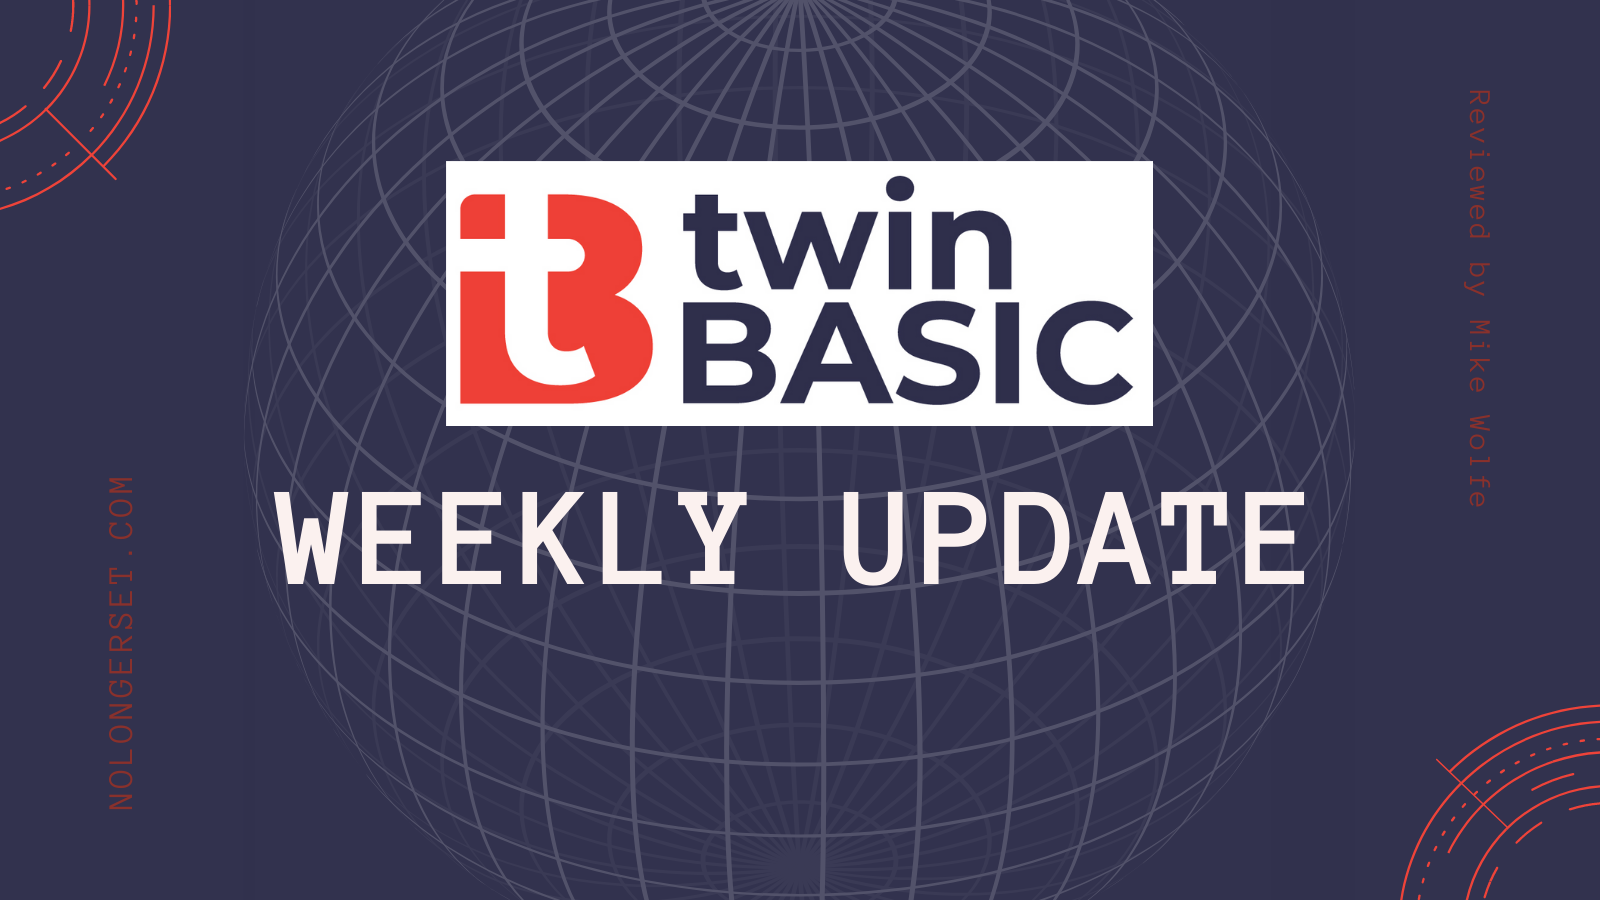 twinBASIC Update: May 9, 2021